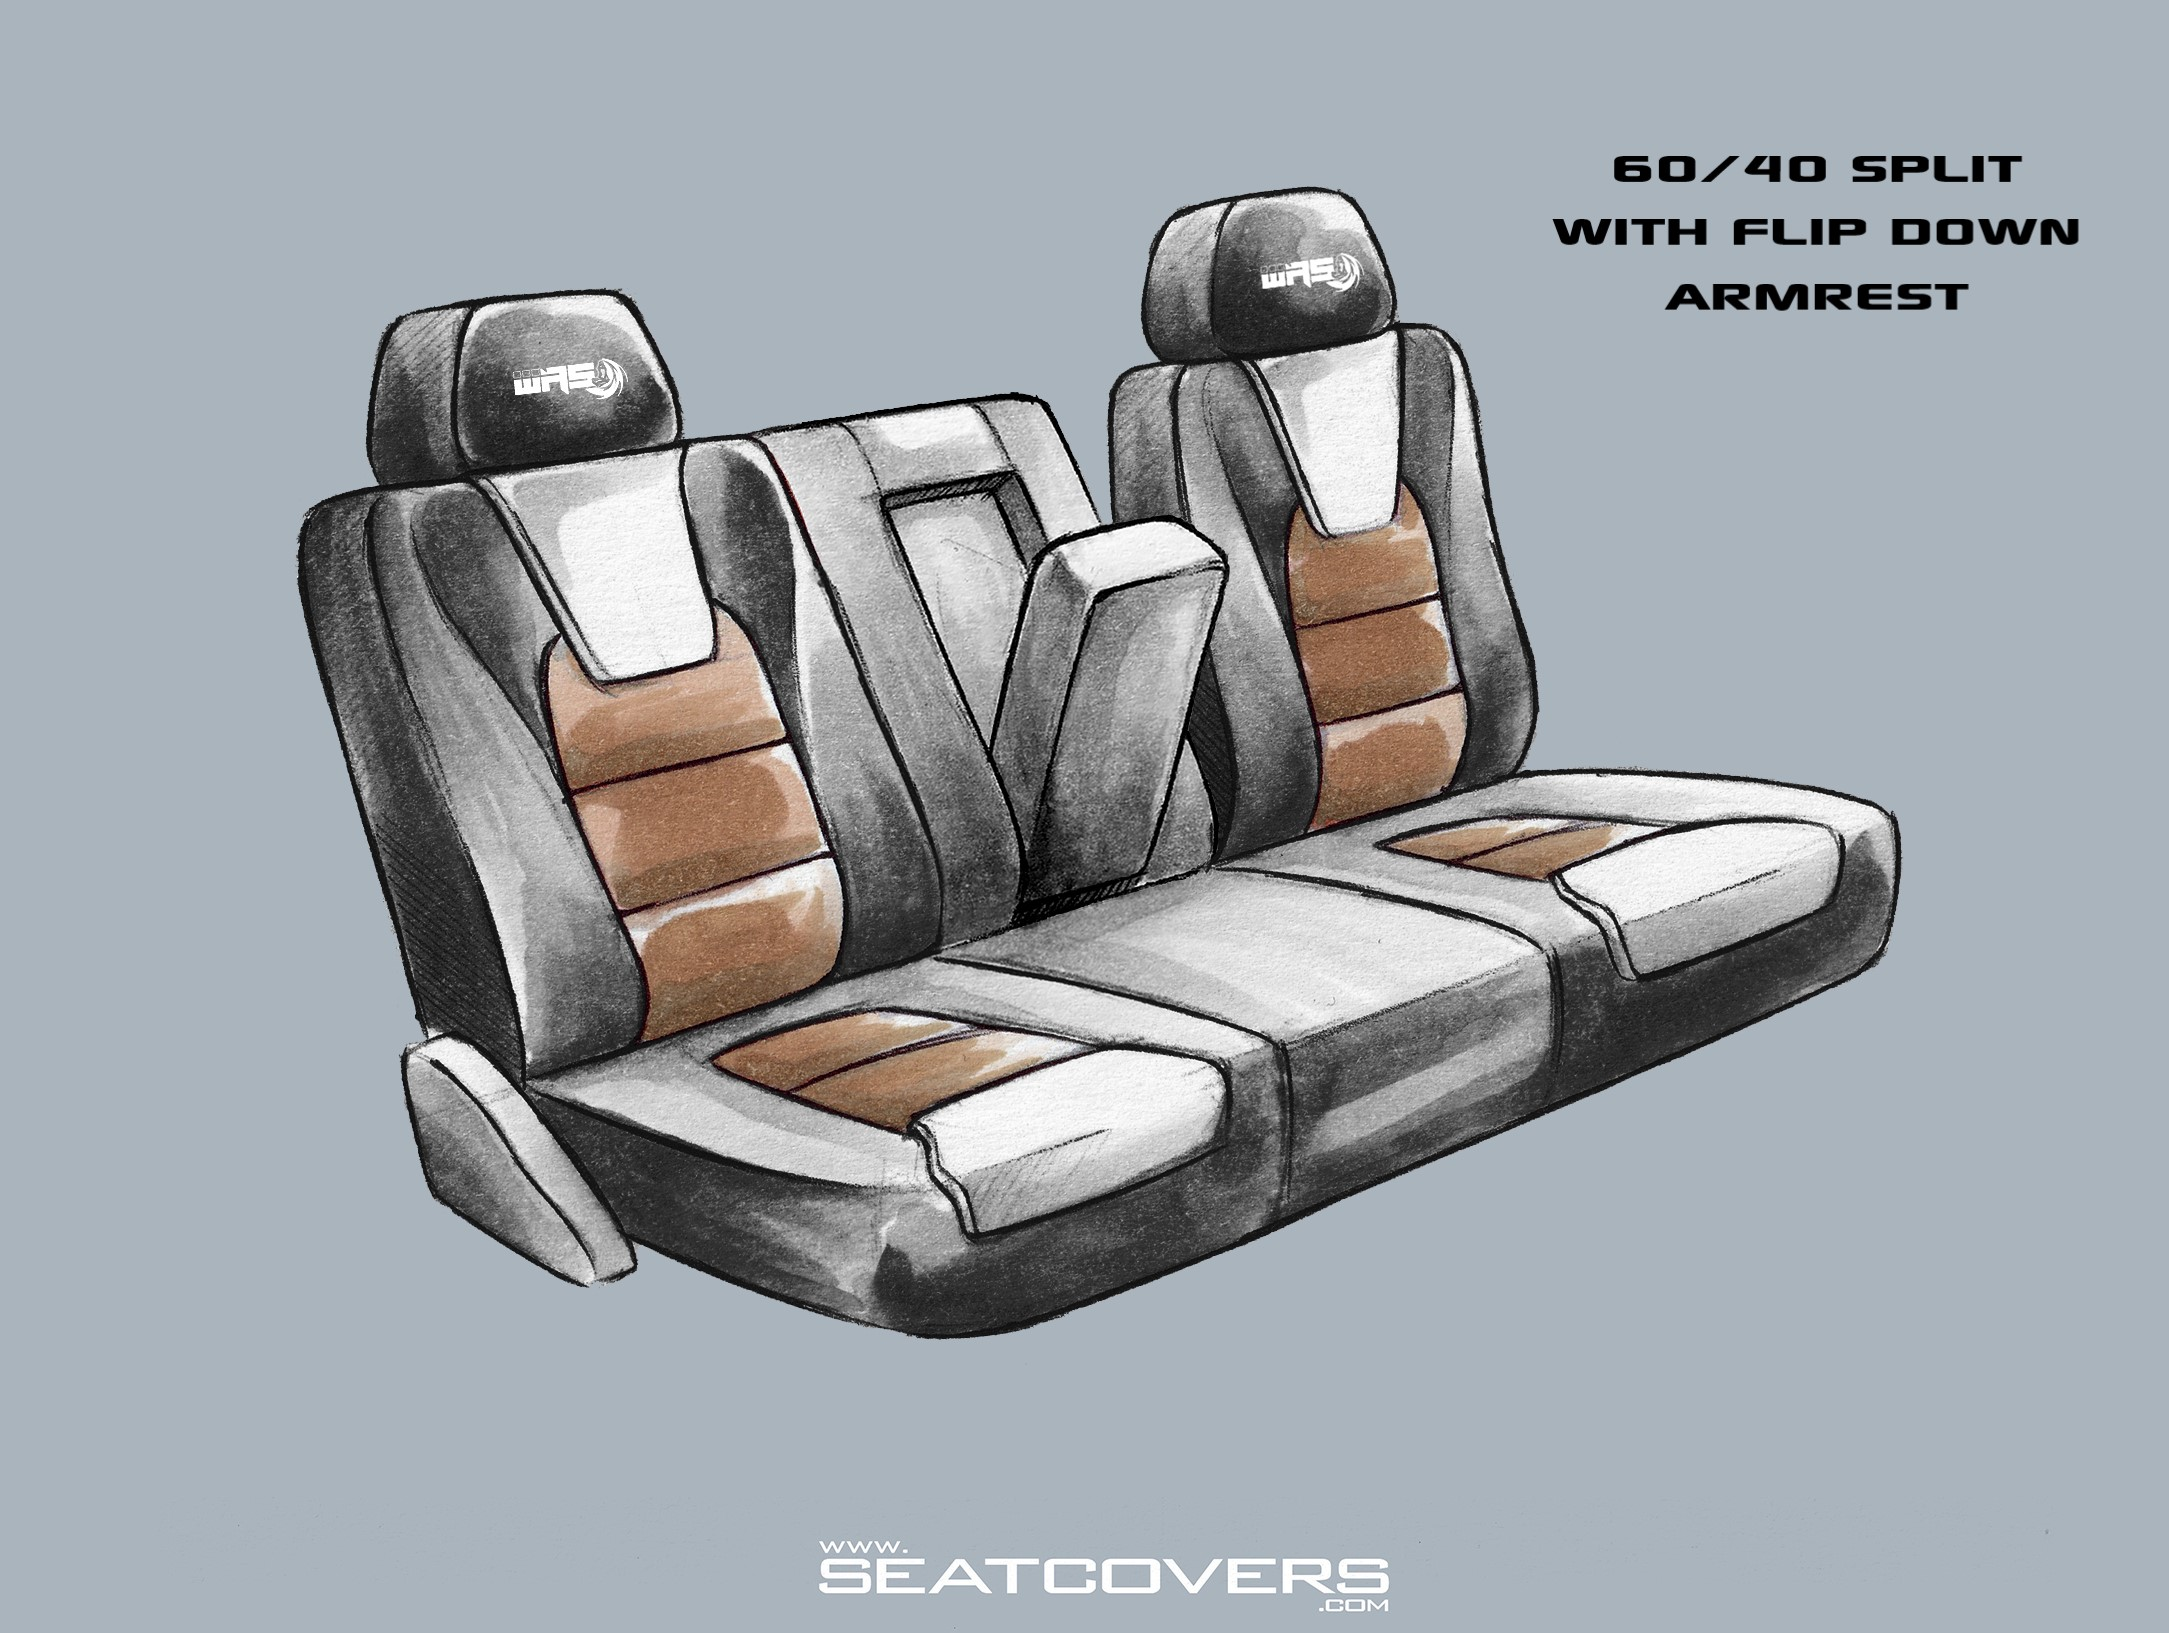 Jeep Cherokee seat covers rear seat covers seatcovers.com